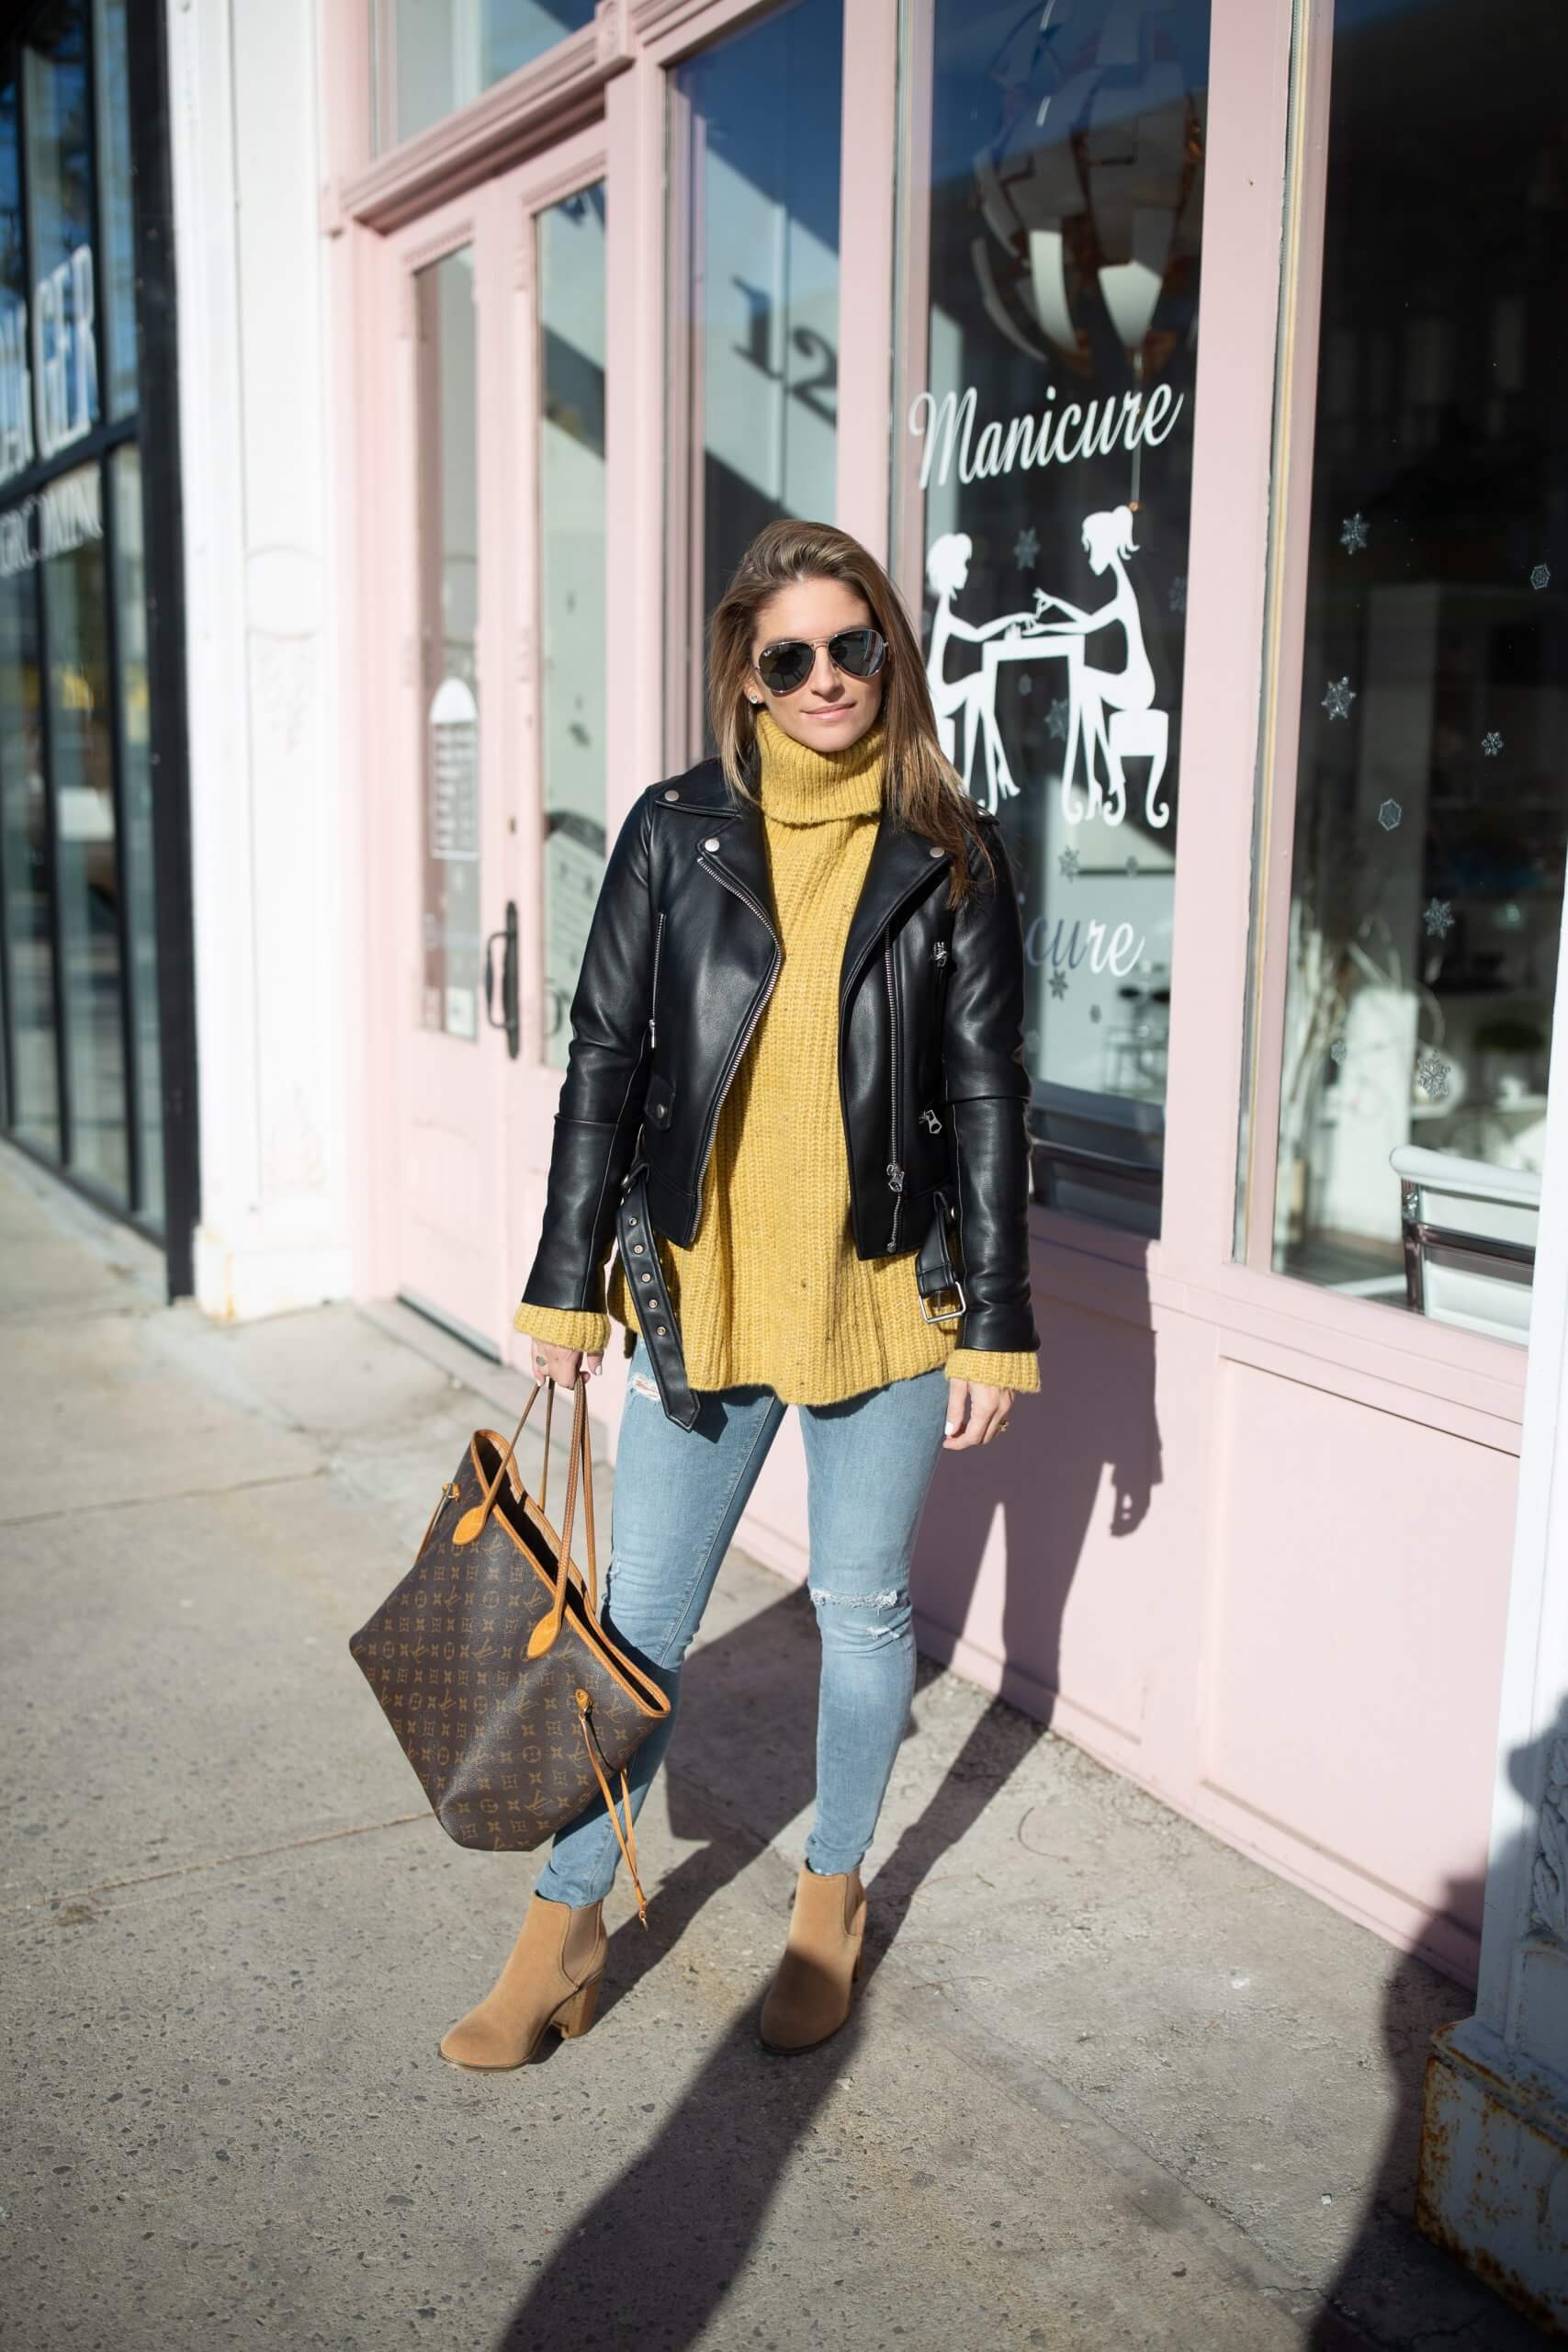 Winter mustard turtleneck, leather jacket, skinny jeans, ankle boots and Louis Vuitton Neverfull bag; weekend outfit; Mandy Furnis; sparkleshinylove